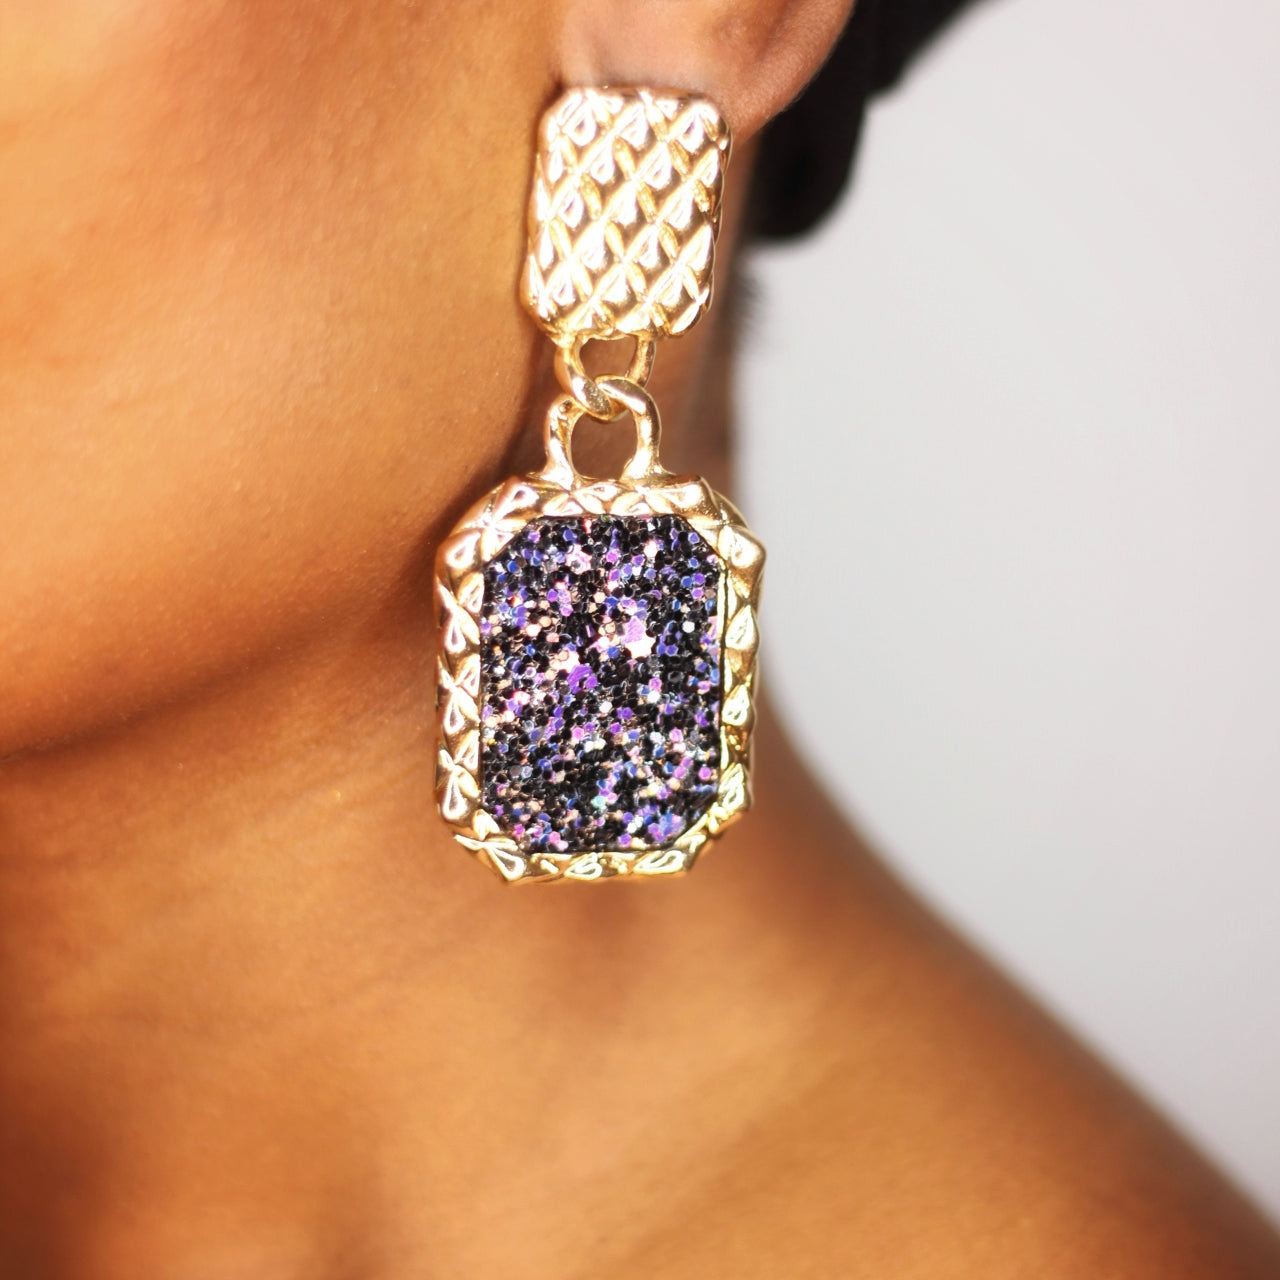 Buy beautiful Galaxy Rectangle Textured Gold Drop Earrings - AWKN Jewelry's